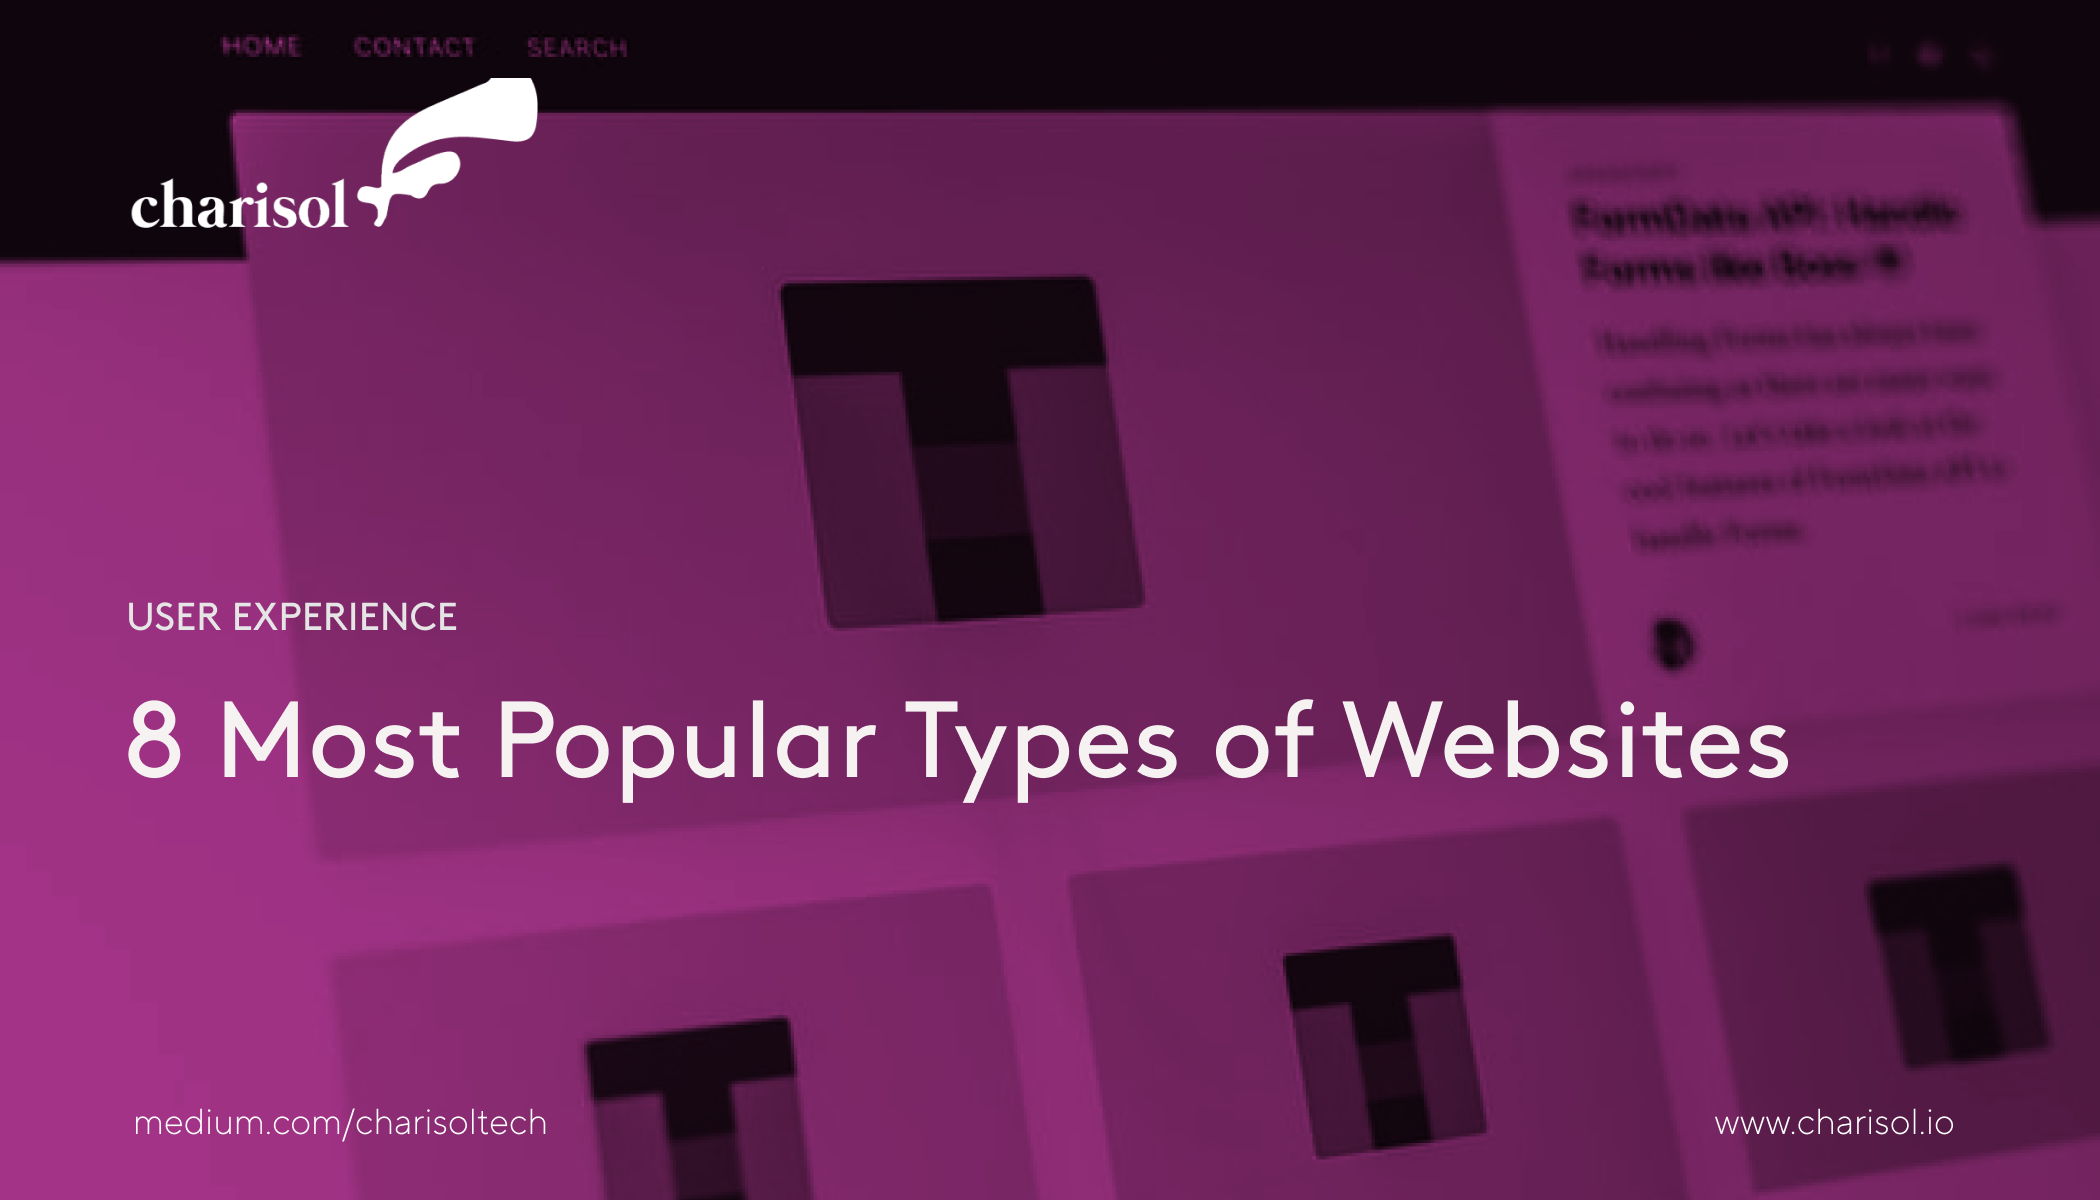 8 Most Popular Types of Websites